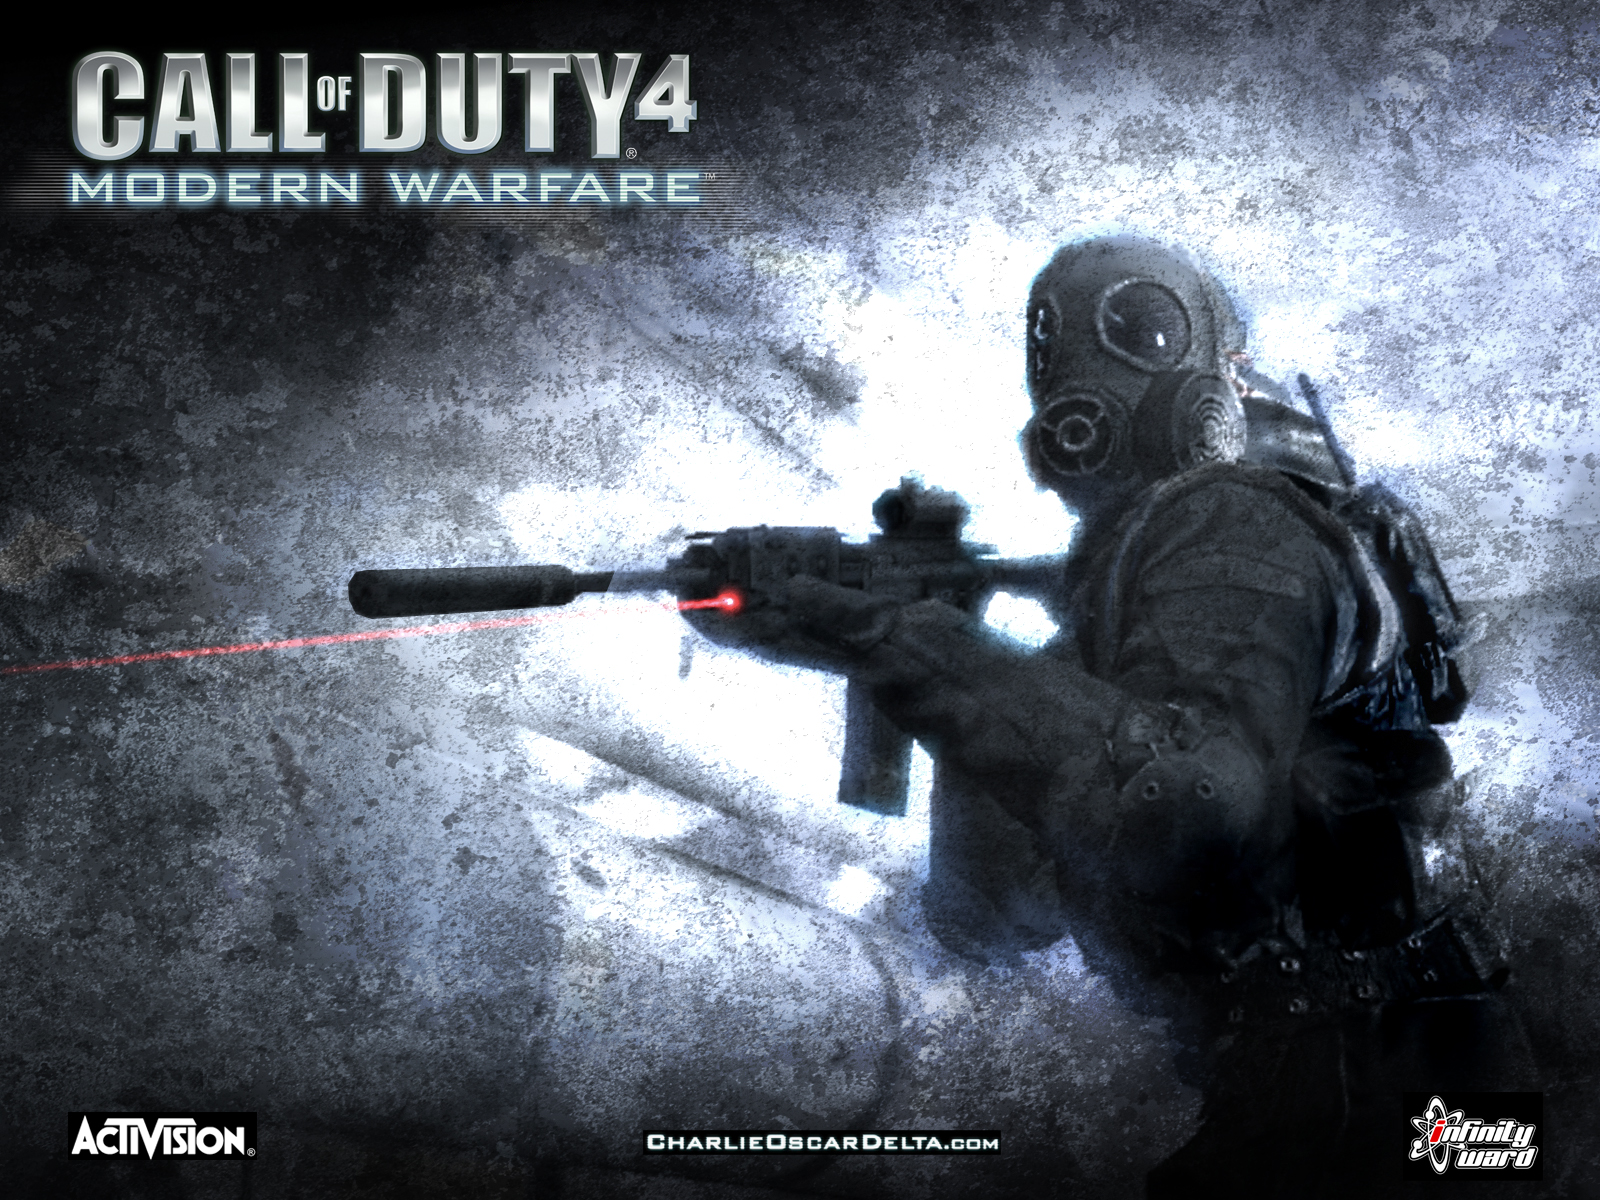 WallpapersKu Call of Duty 4 Wallpapers.